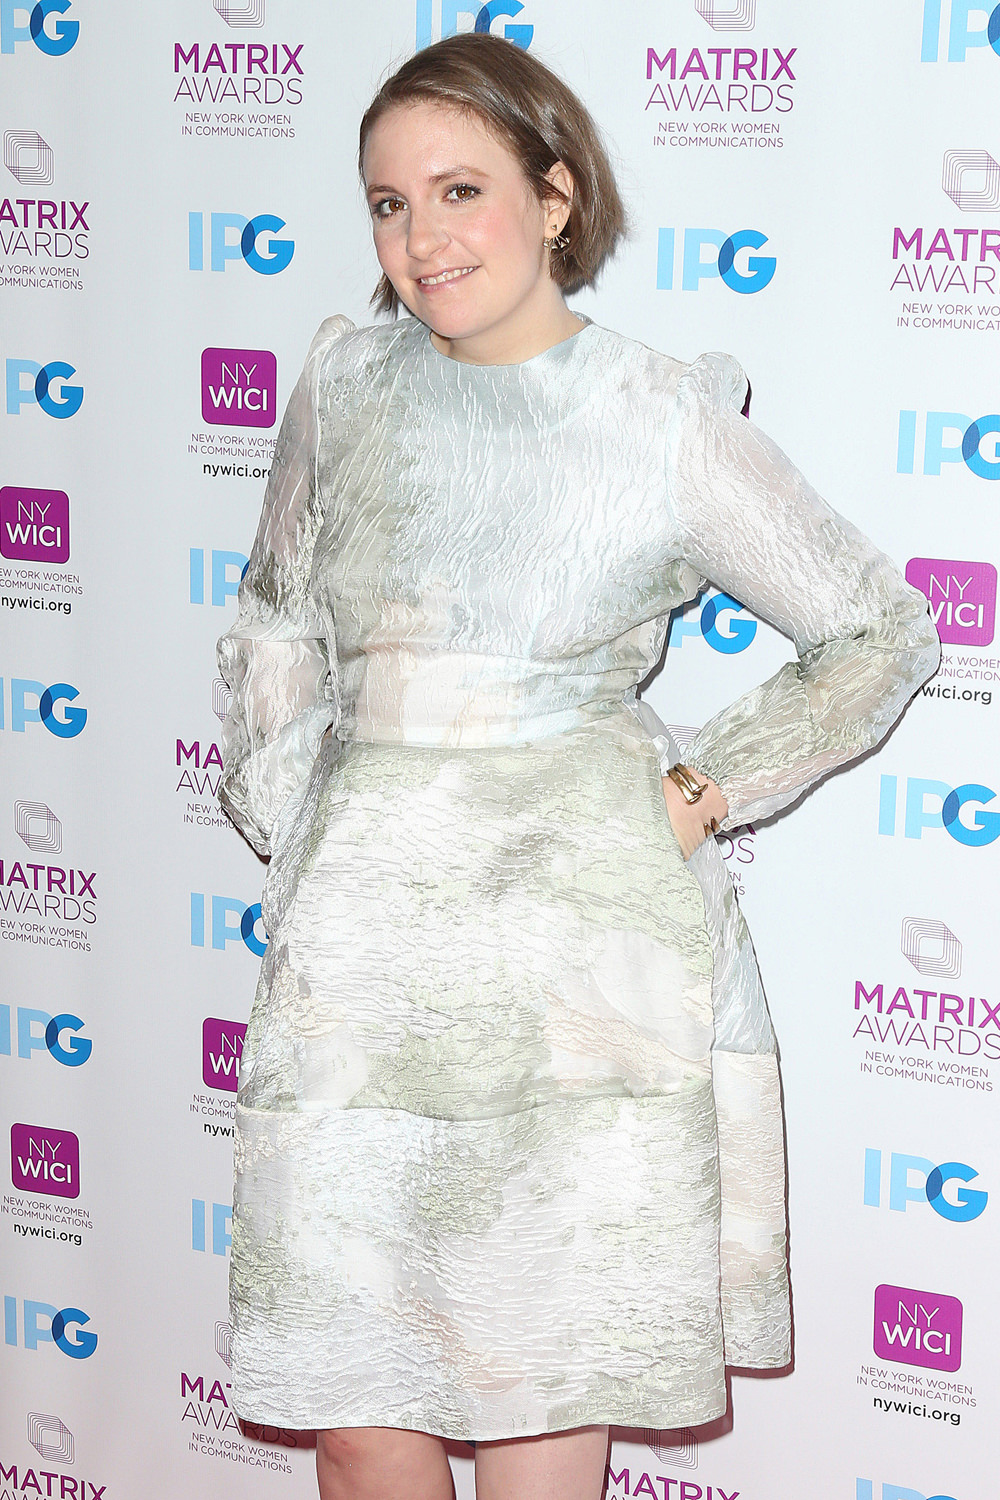 Lena-Dunham-2016-Matrix-Awards-Red-Carpet-Fashion-Tom-Lorenzo-Site (1)